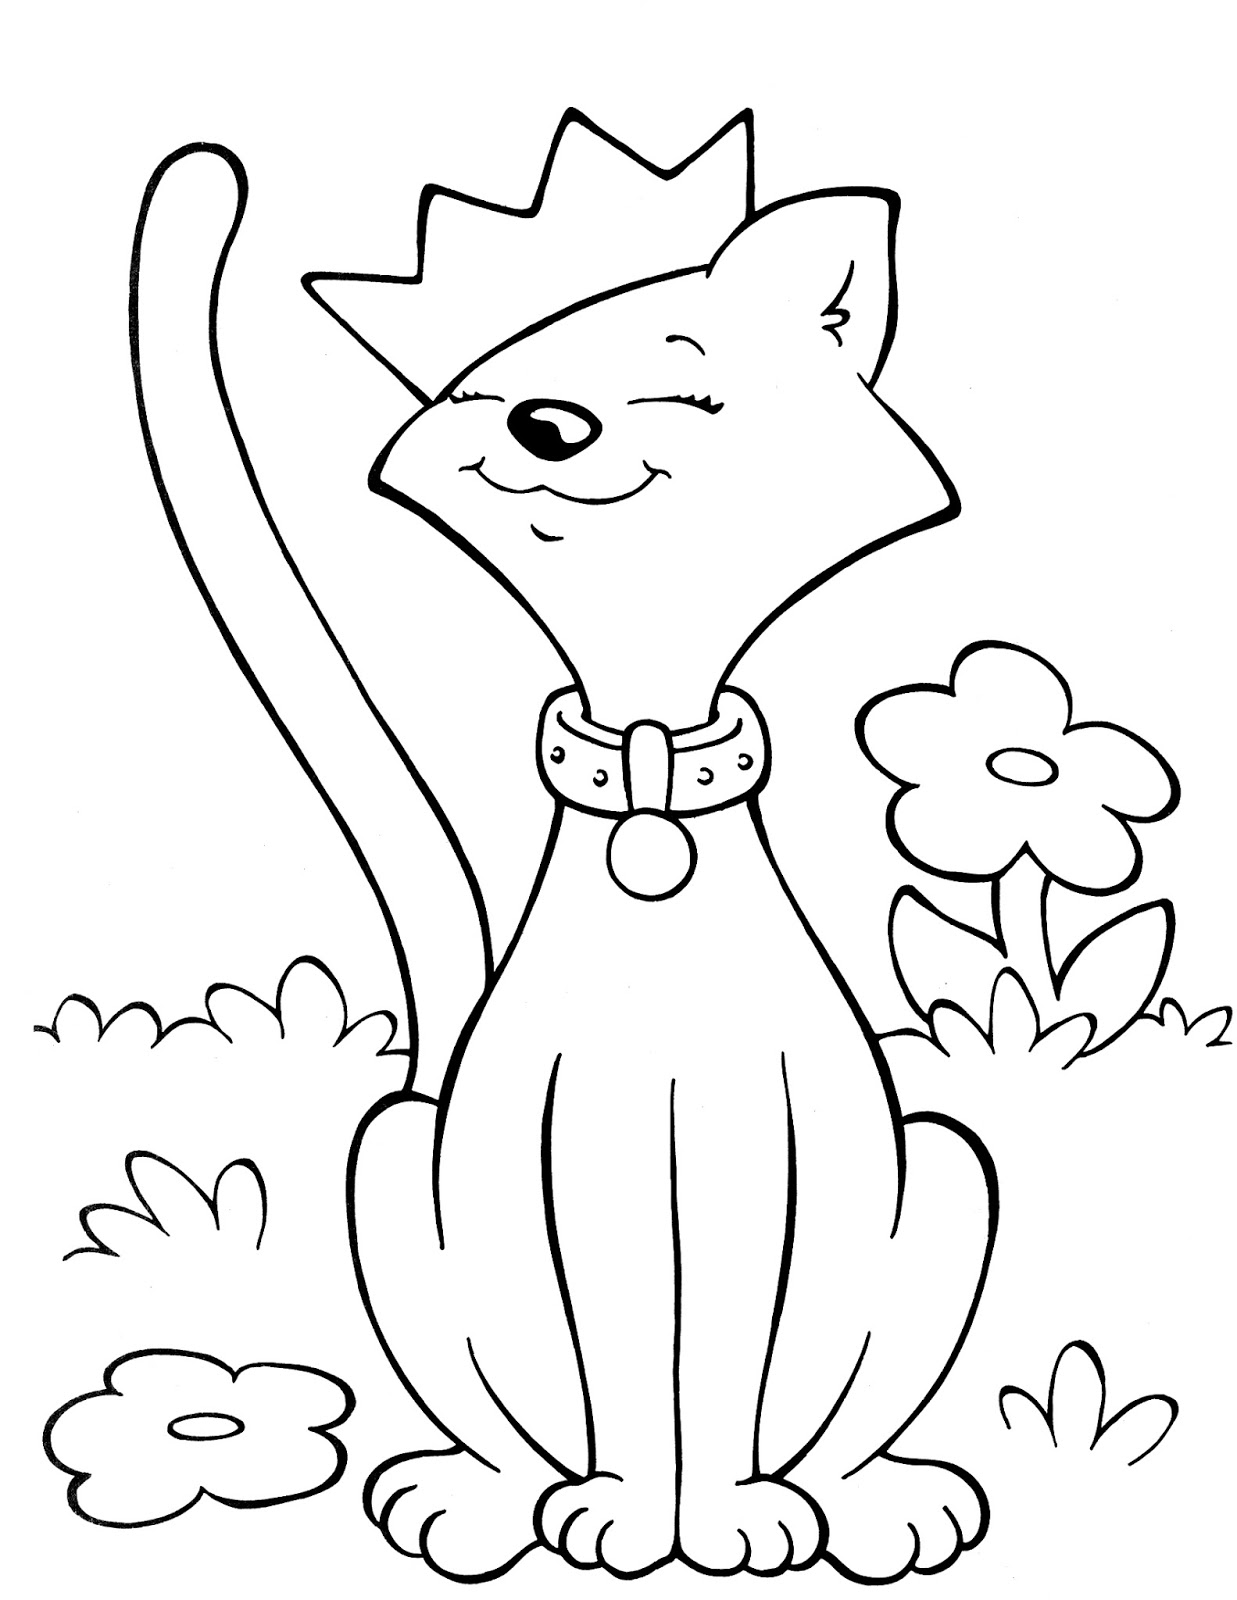 Finding Printable Coloring Pages Online